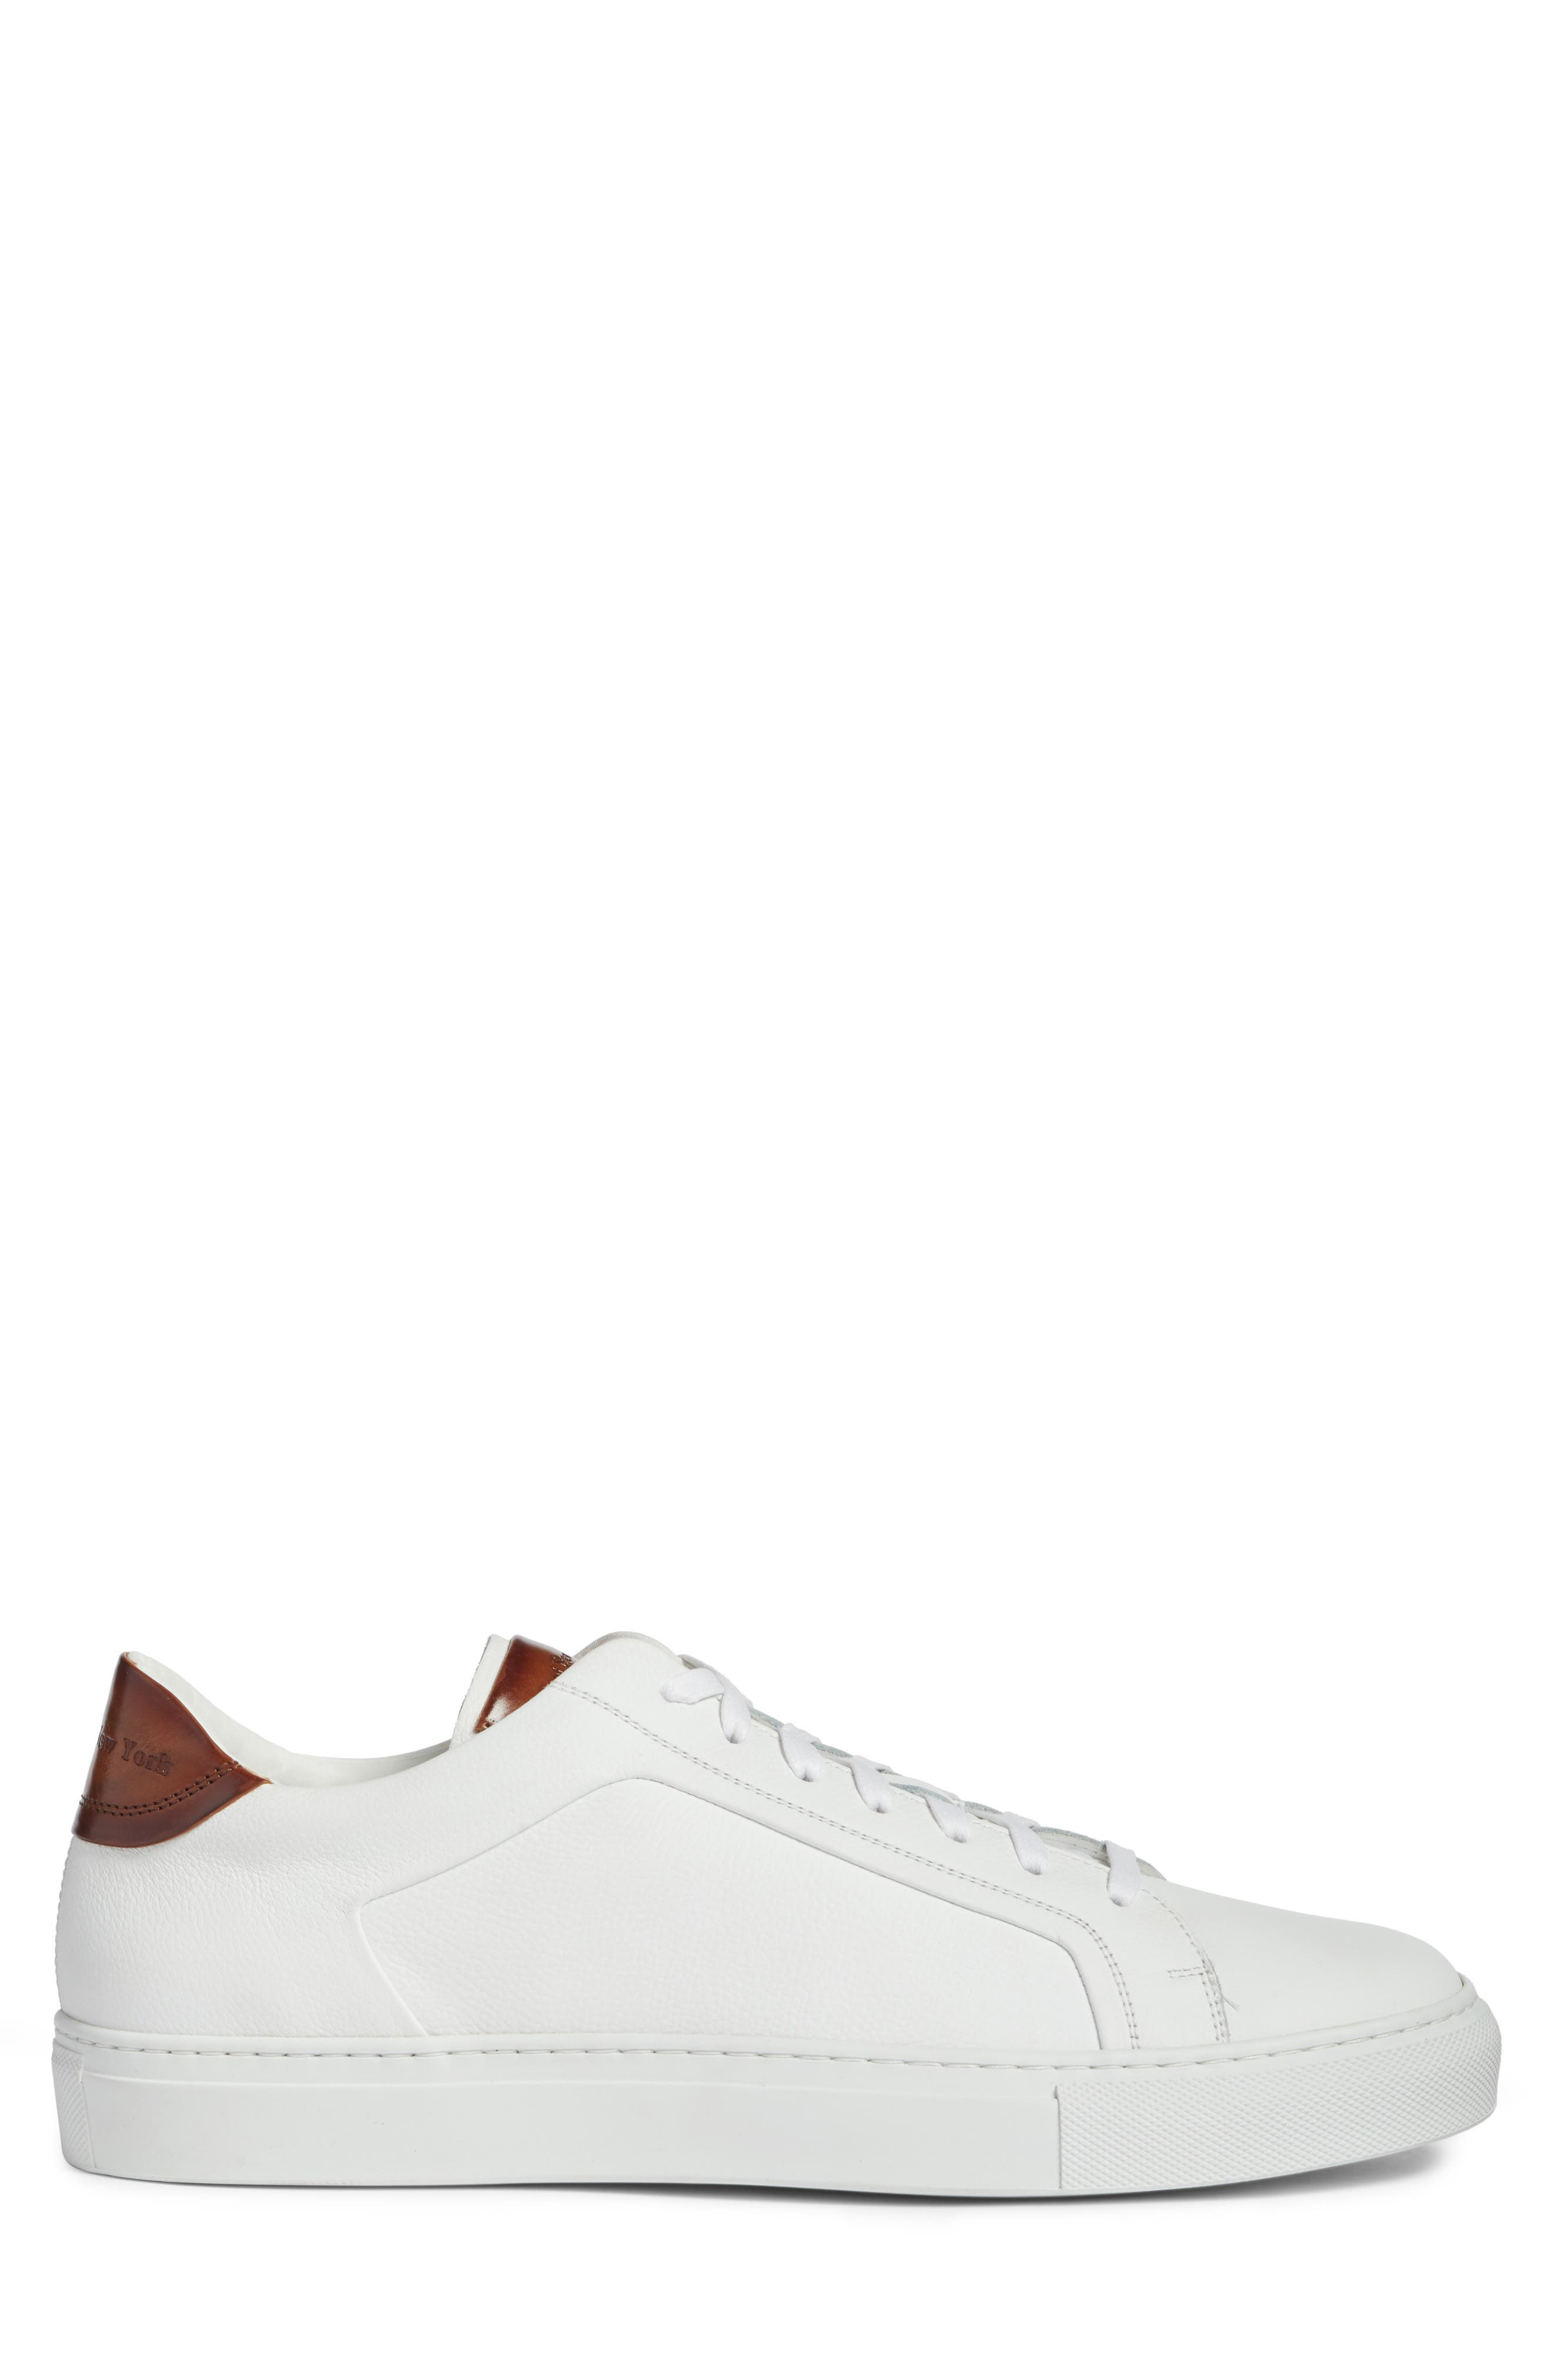 Carlin Sneaker,                             Alternate thumbnail 3, color,                             White/ Tan Leather